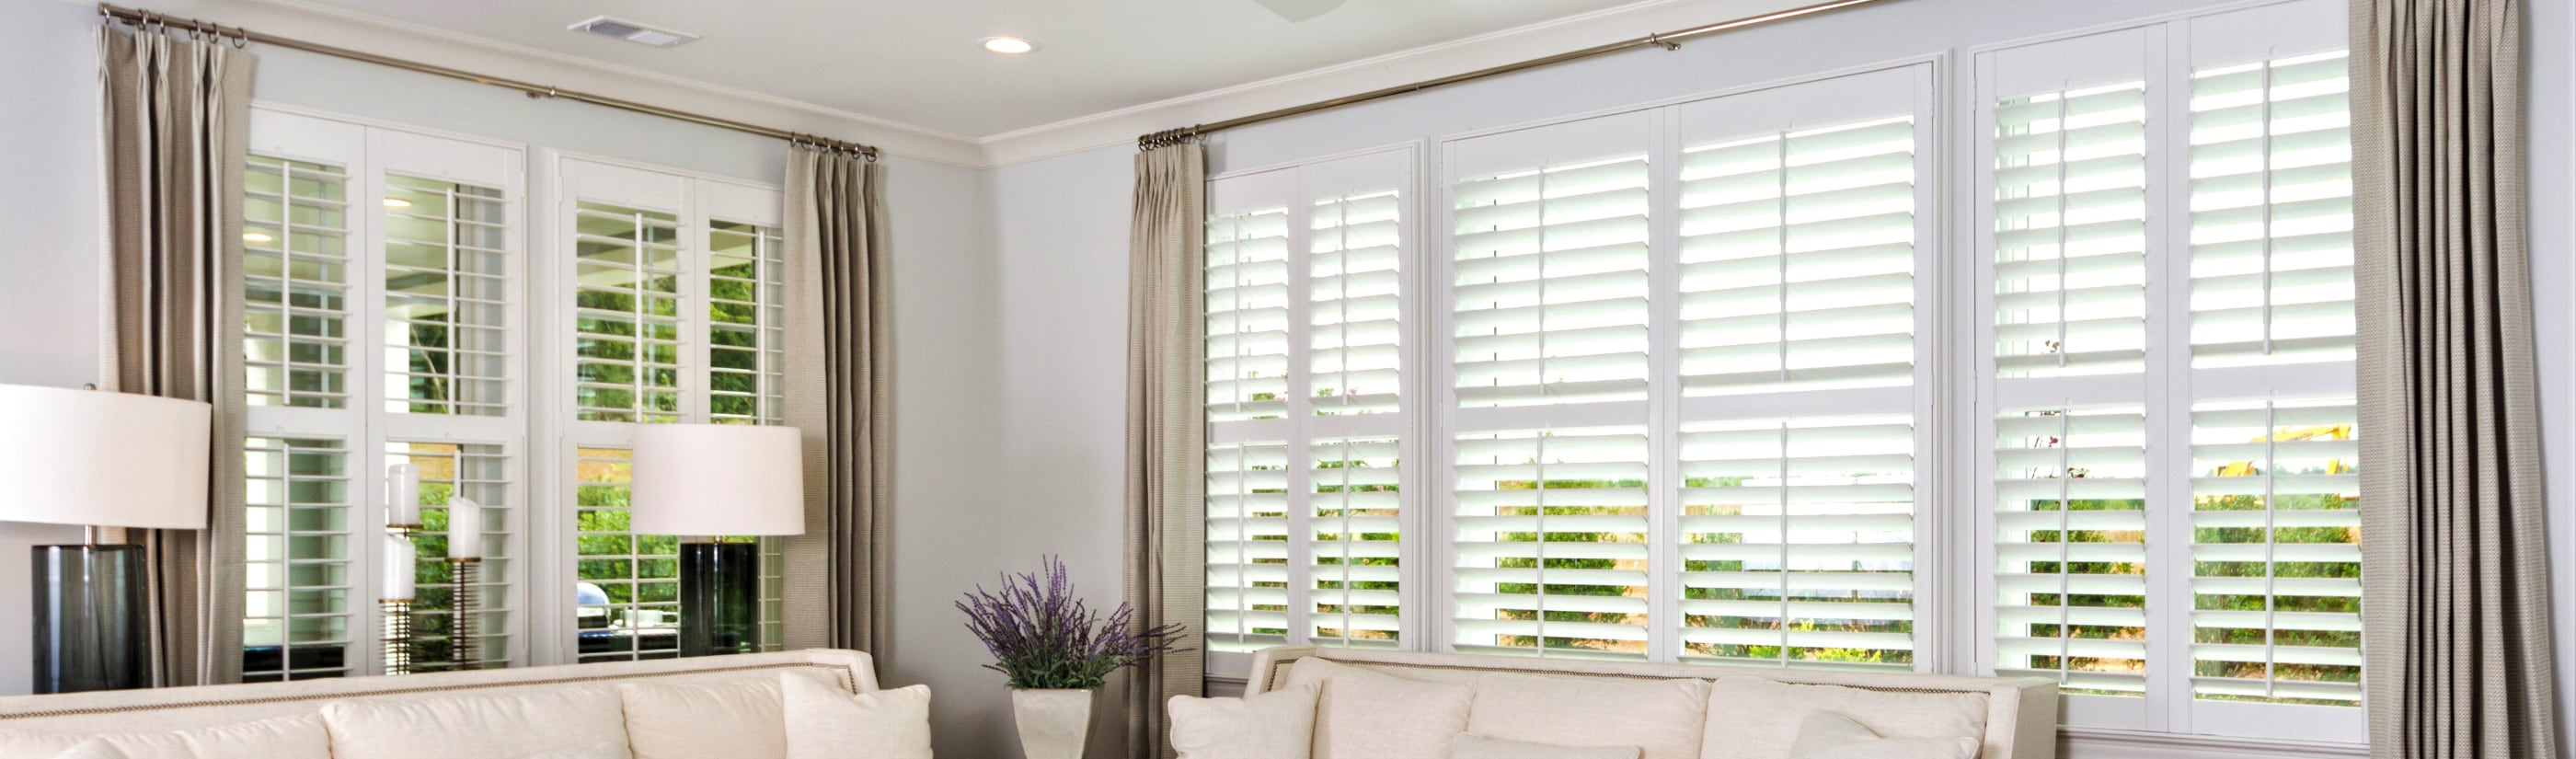 Polywood Shutters Paints In Sacramento